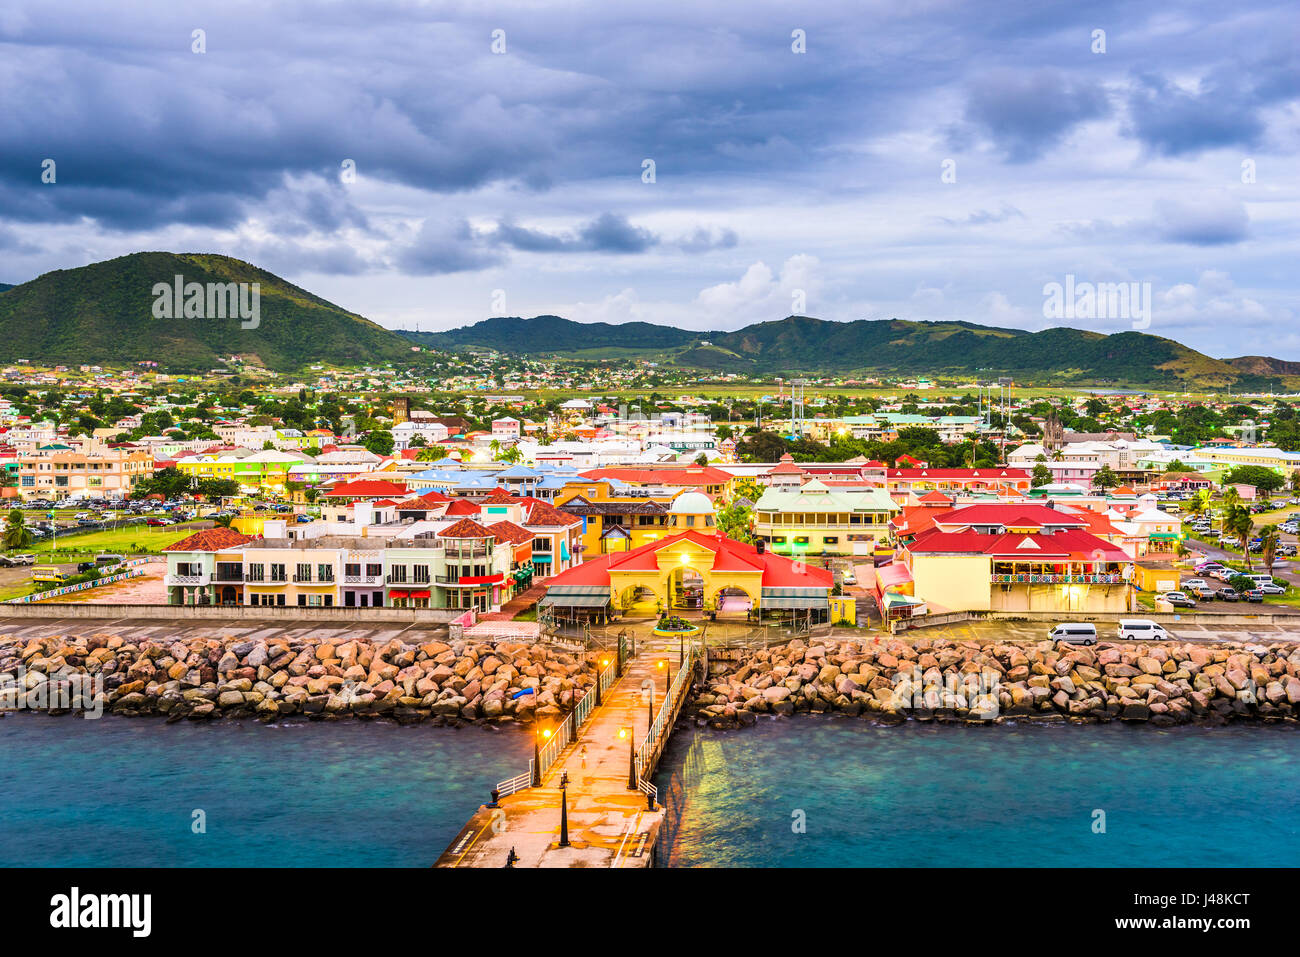 Basseterre, Saint Kitts et Nevis ville skyline au port. Photo Stock